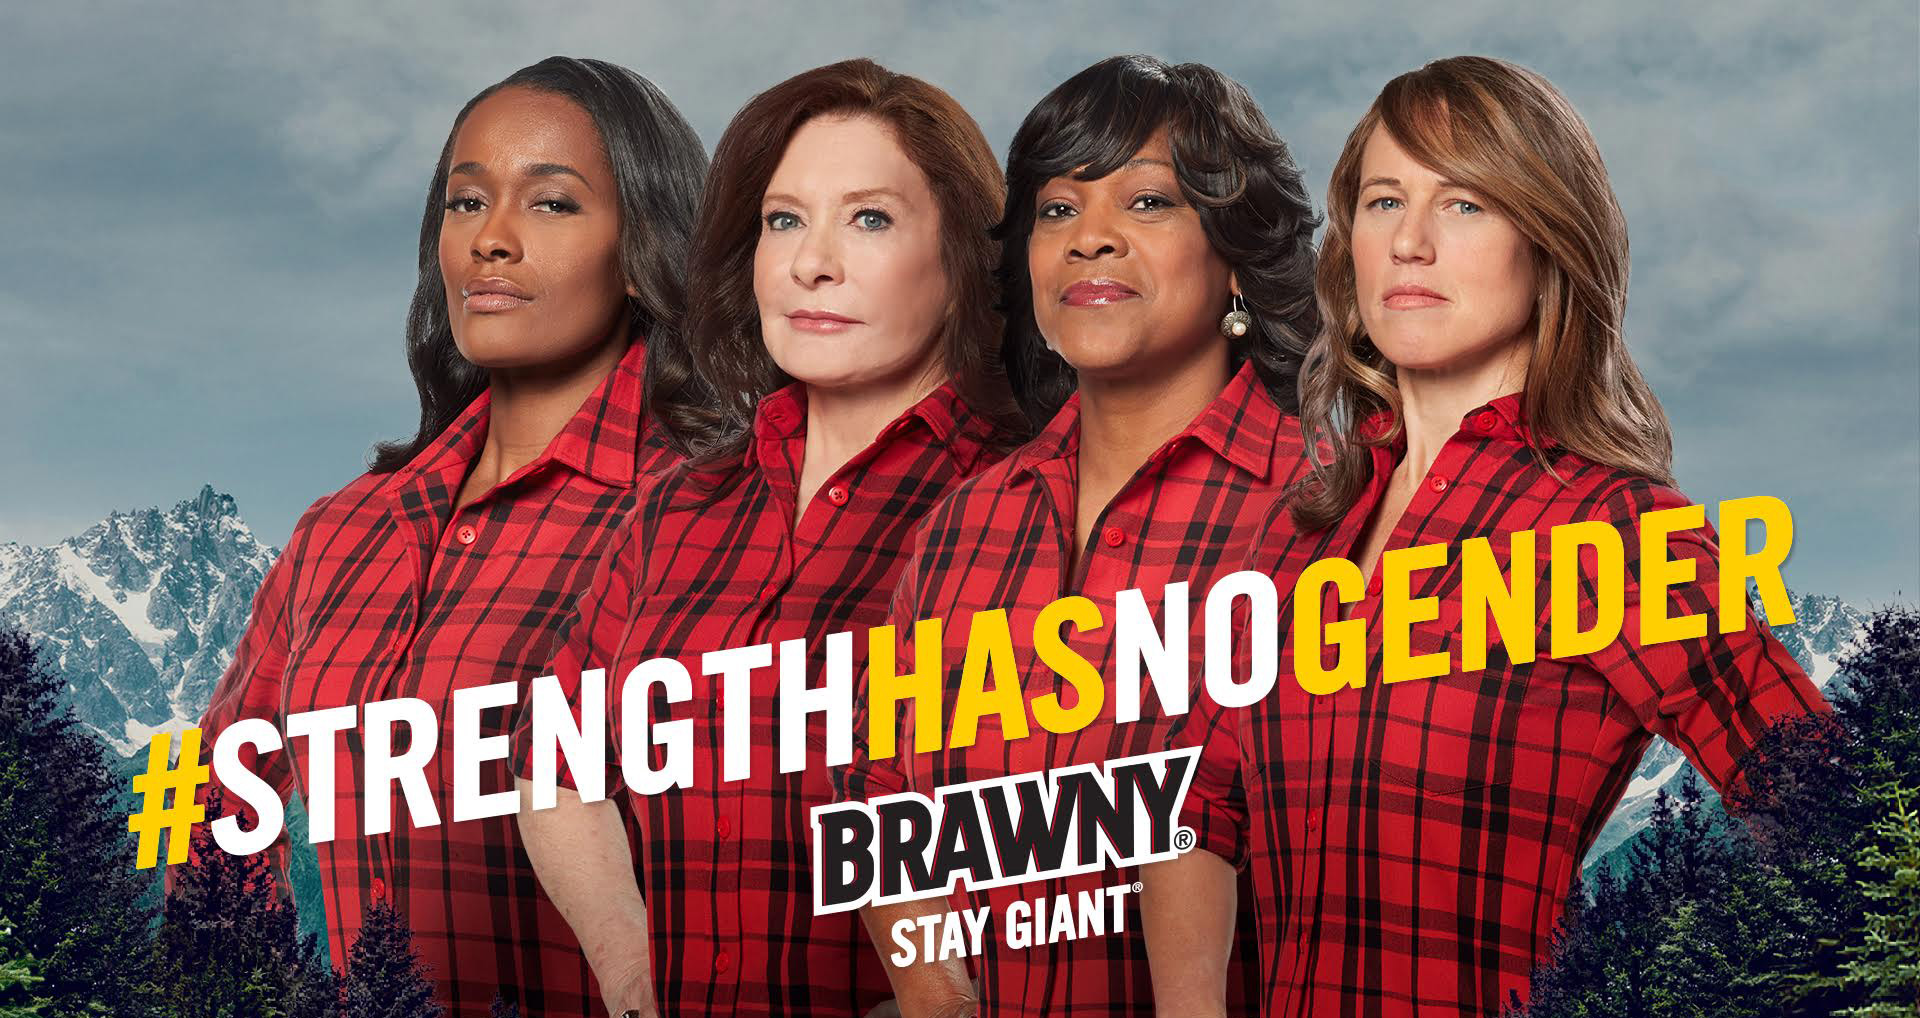 The maker of Brawny® Celebrates Strong and Resilient Women.